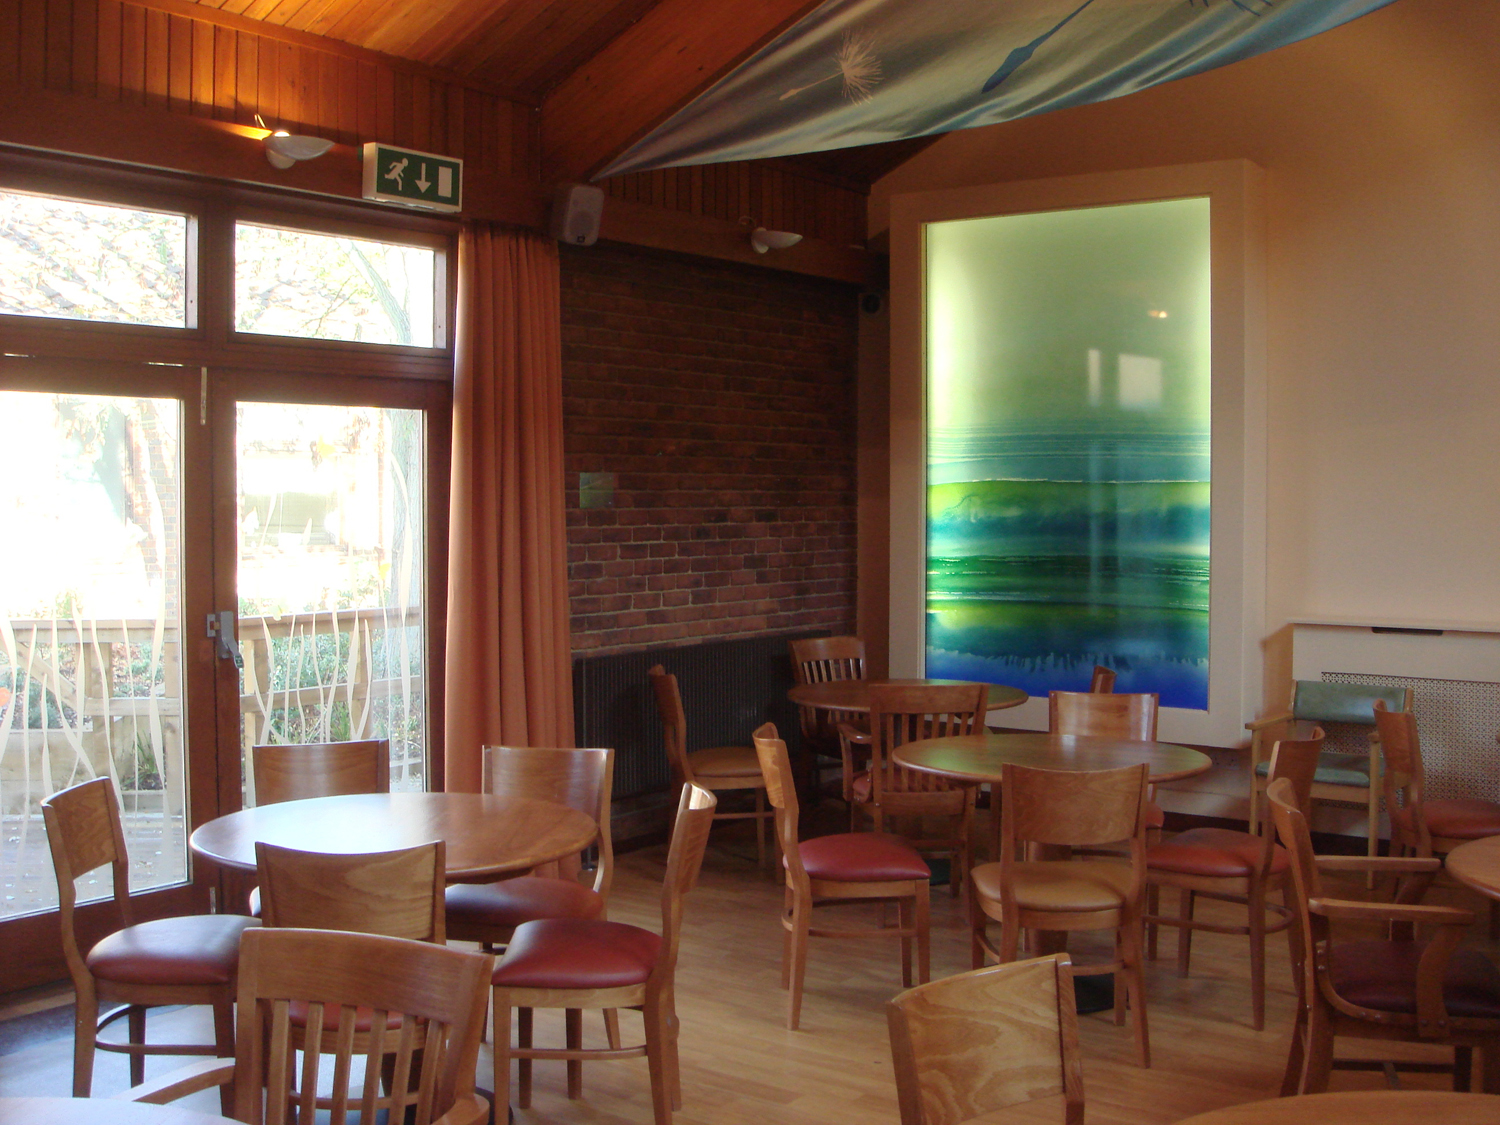 Lightbox in restaurant, Abraham Cowley Mental Health Unit. Langley and Borders MH NHS Trust. Chertsey.